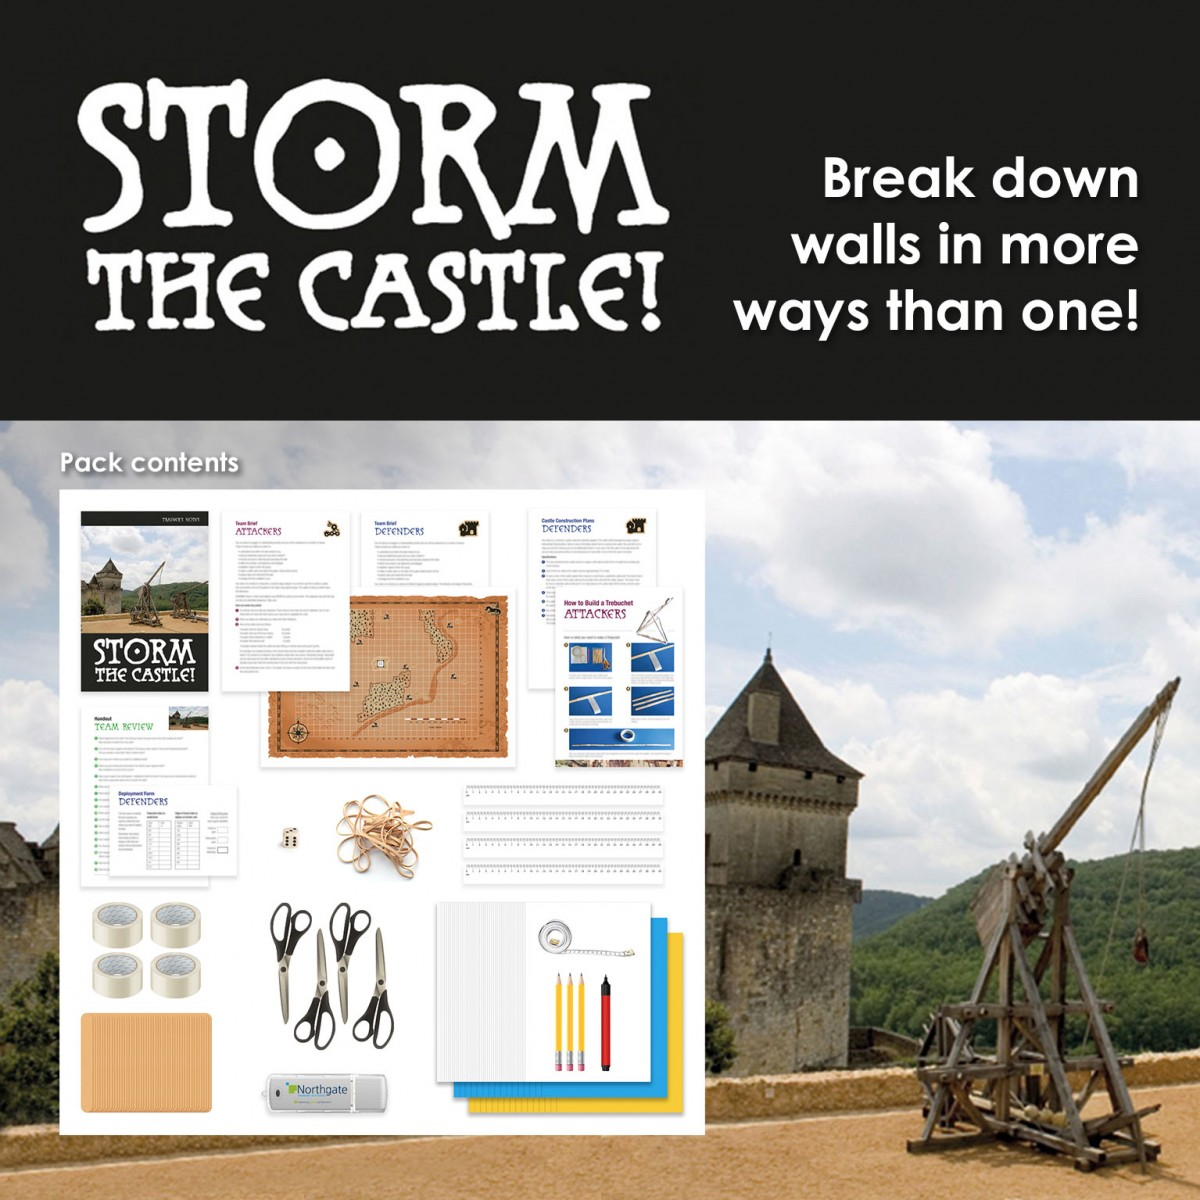 Storm the Castle! | Fun Teamwork Training Activity